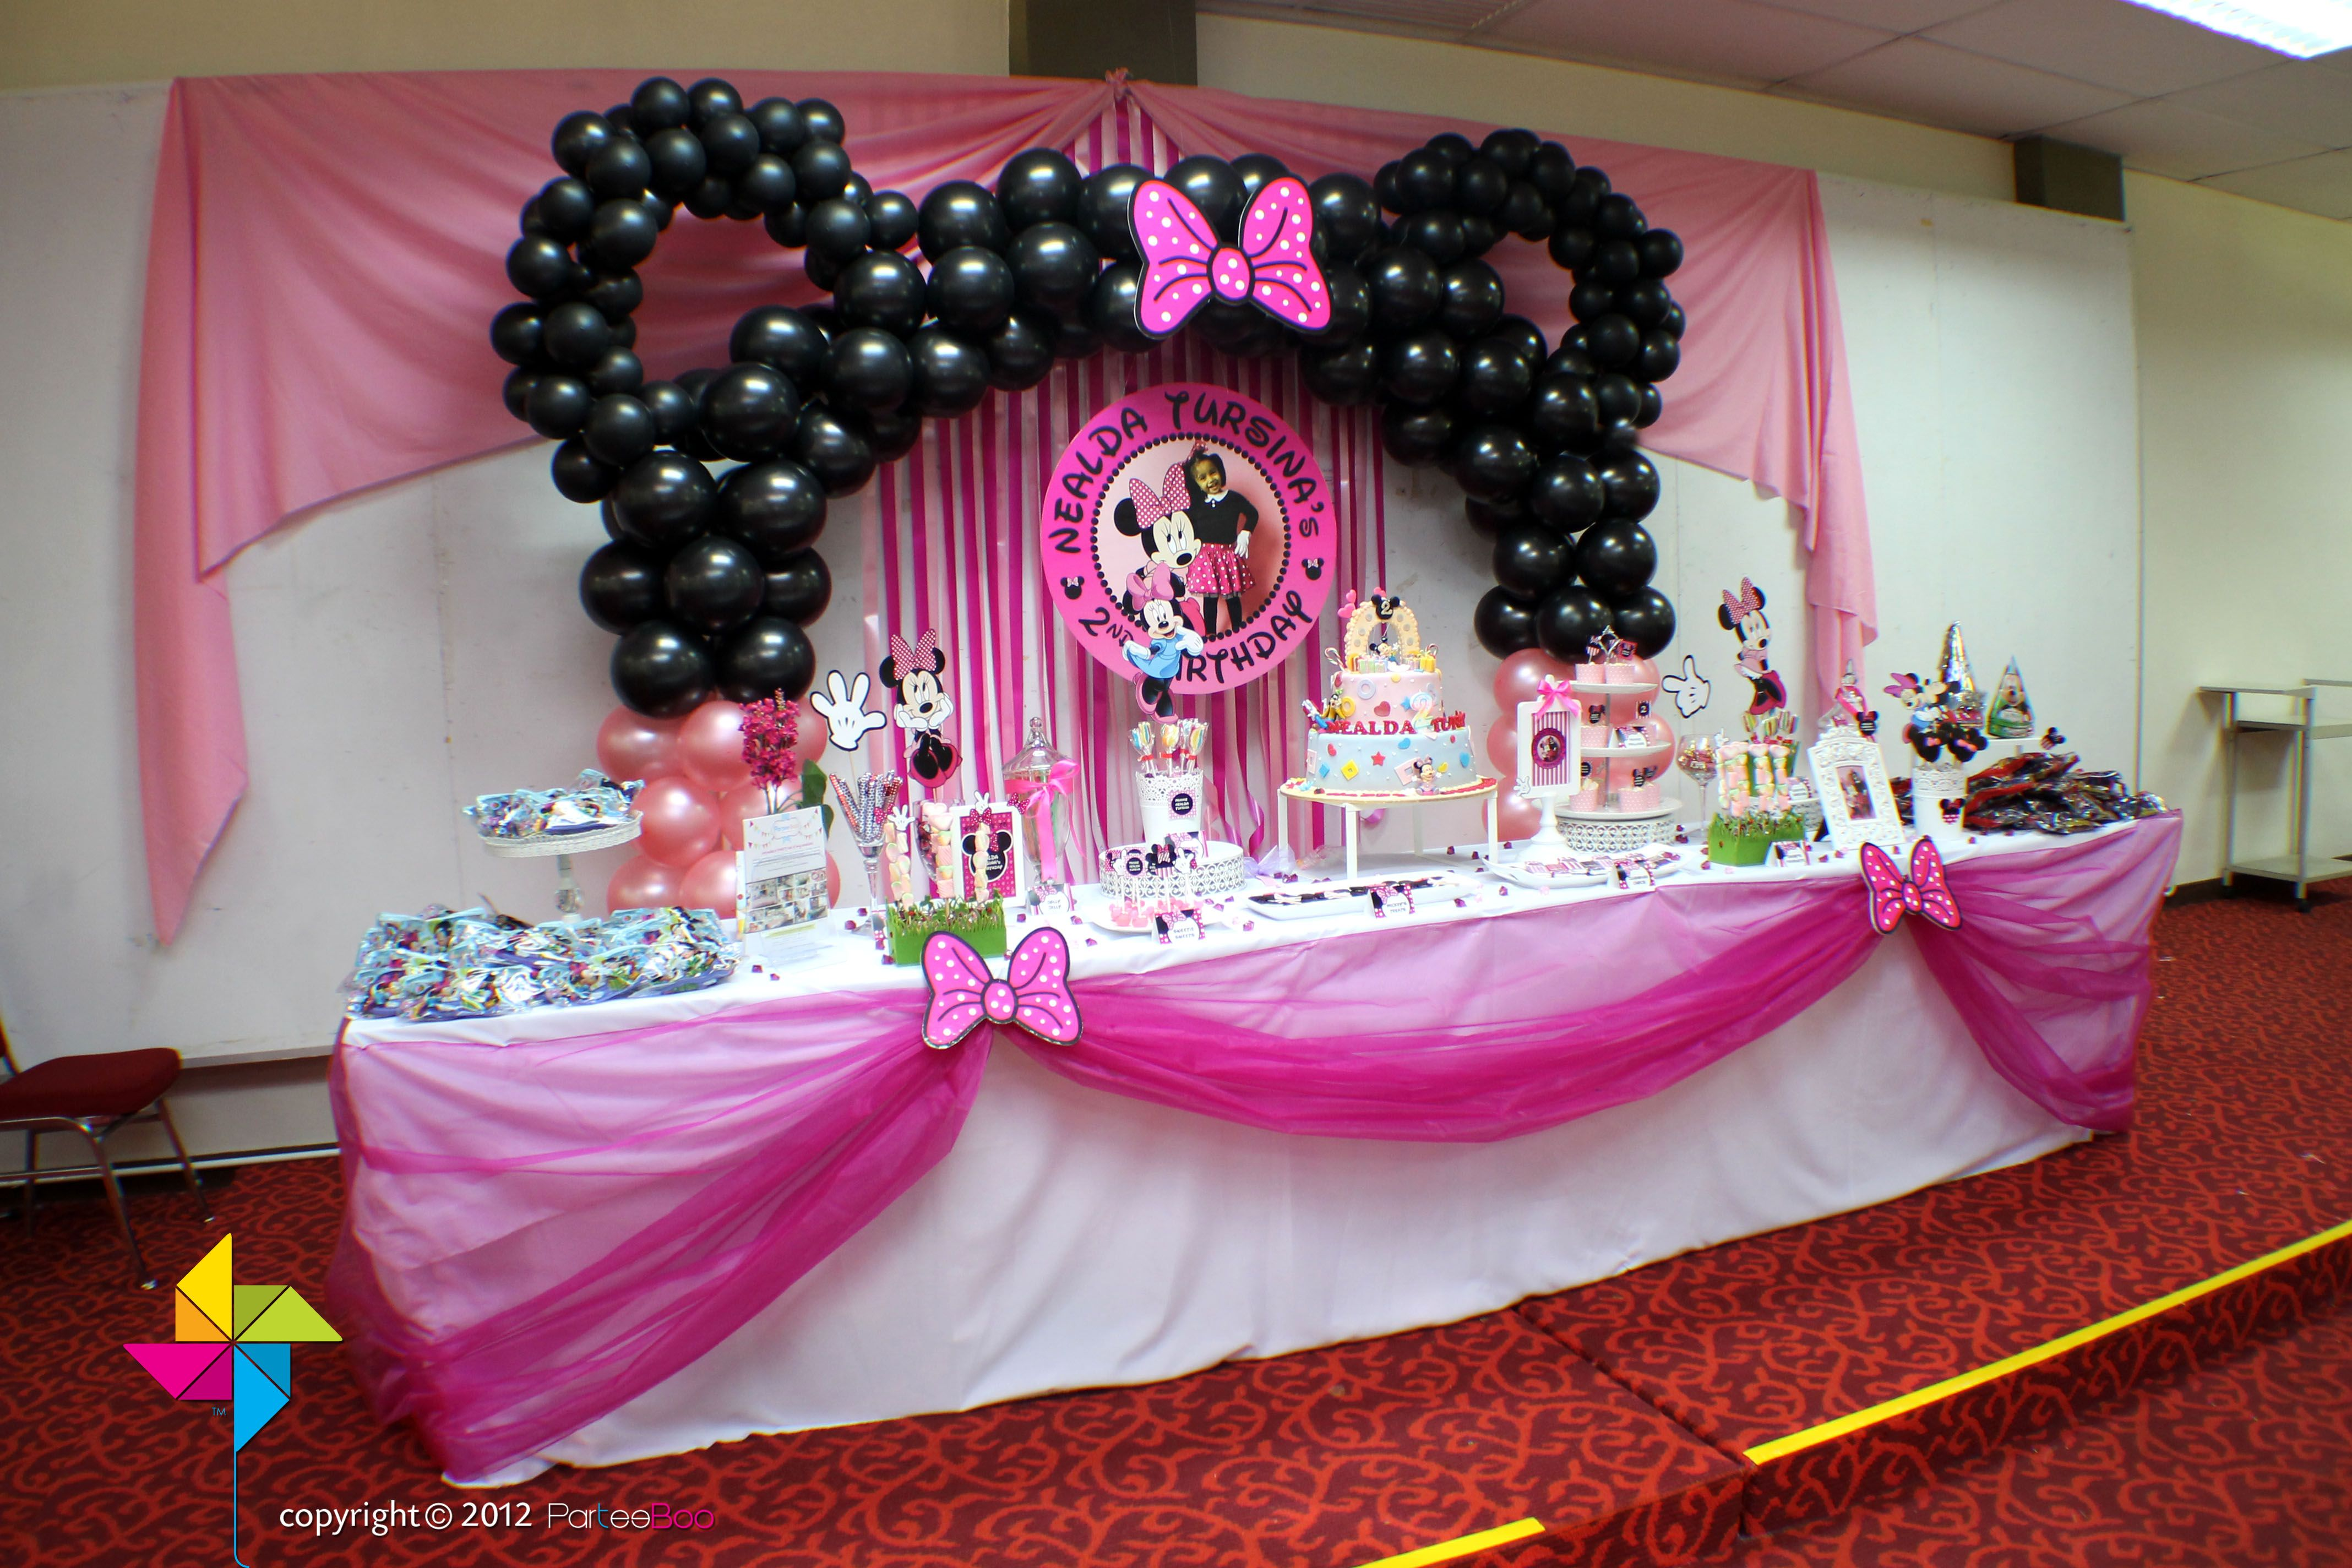 Backdrop And Dessert Candy Table For A Minnie Mouse Themed Birthday Party Design Setup By Parte Minnie Mouse Theme Party Minnie Party Girls Birthday Party